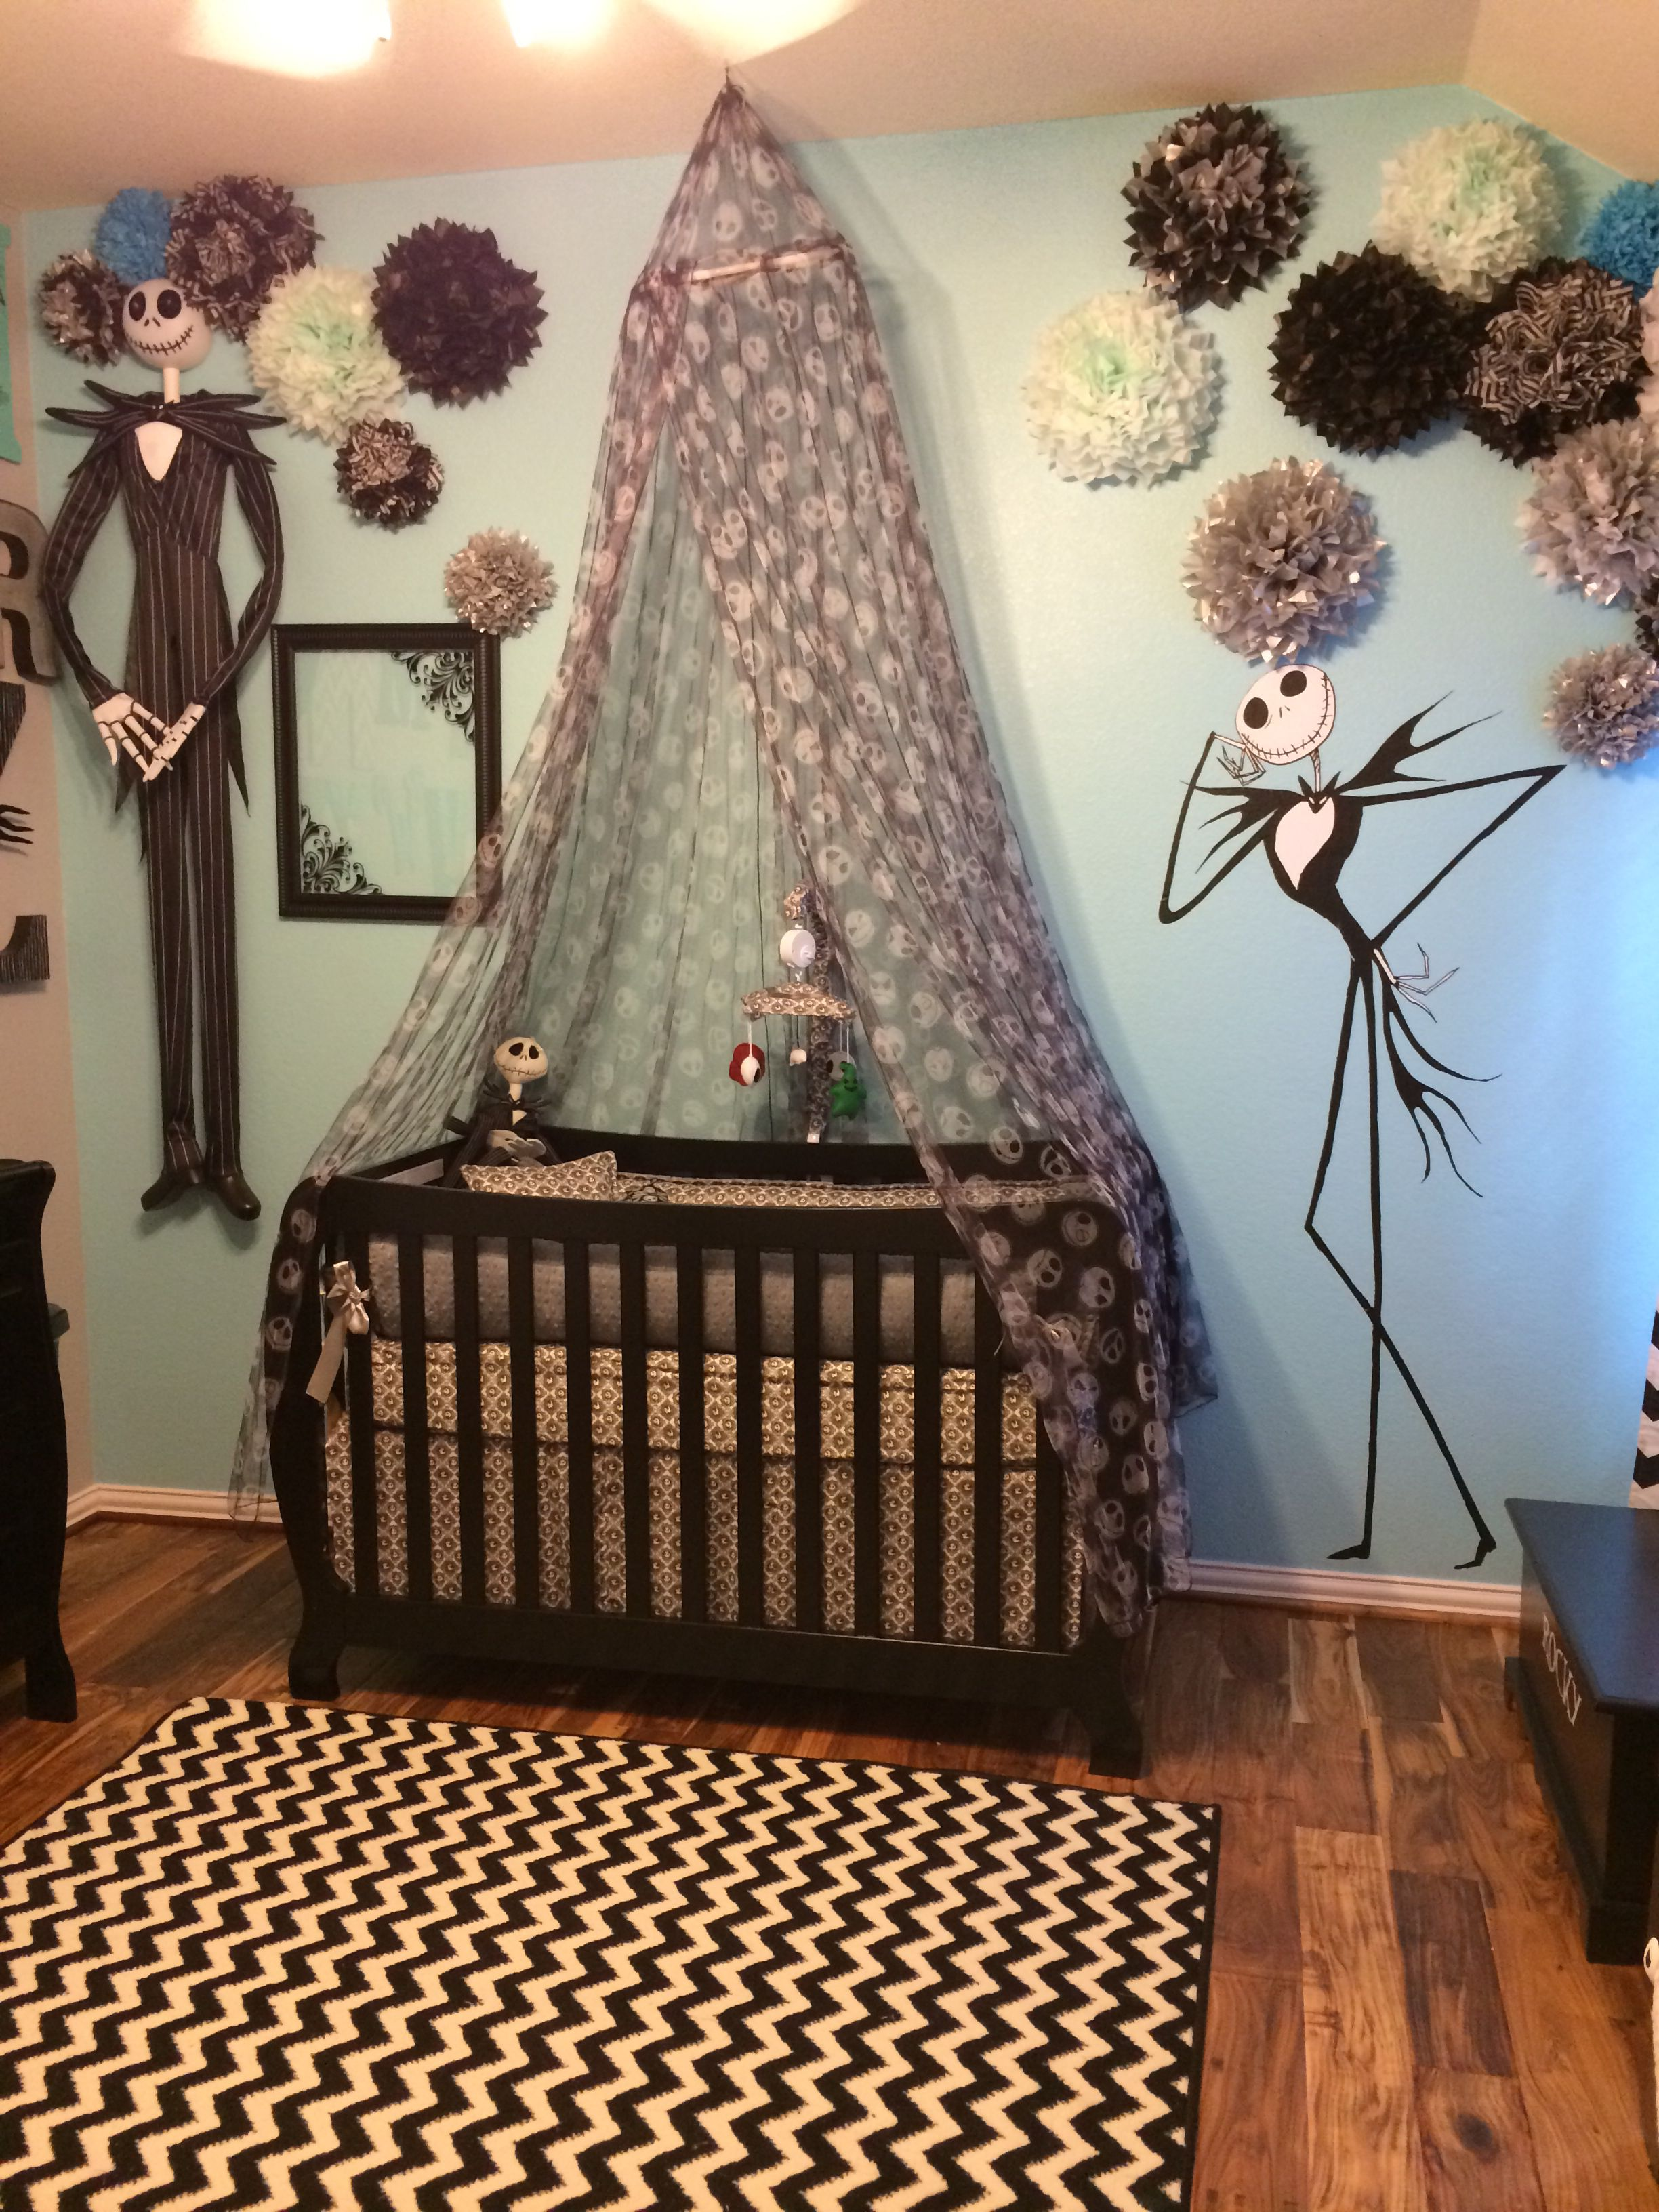 10 Great Baby Room Ideas For Parents To Use In Their Decor The